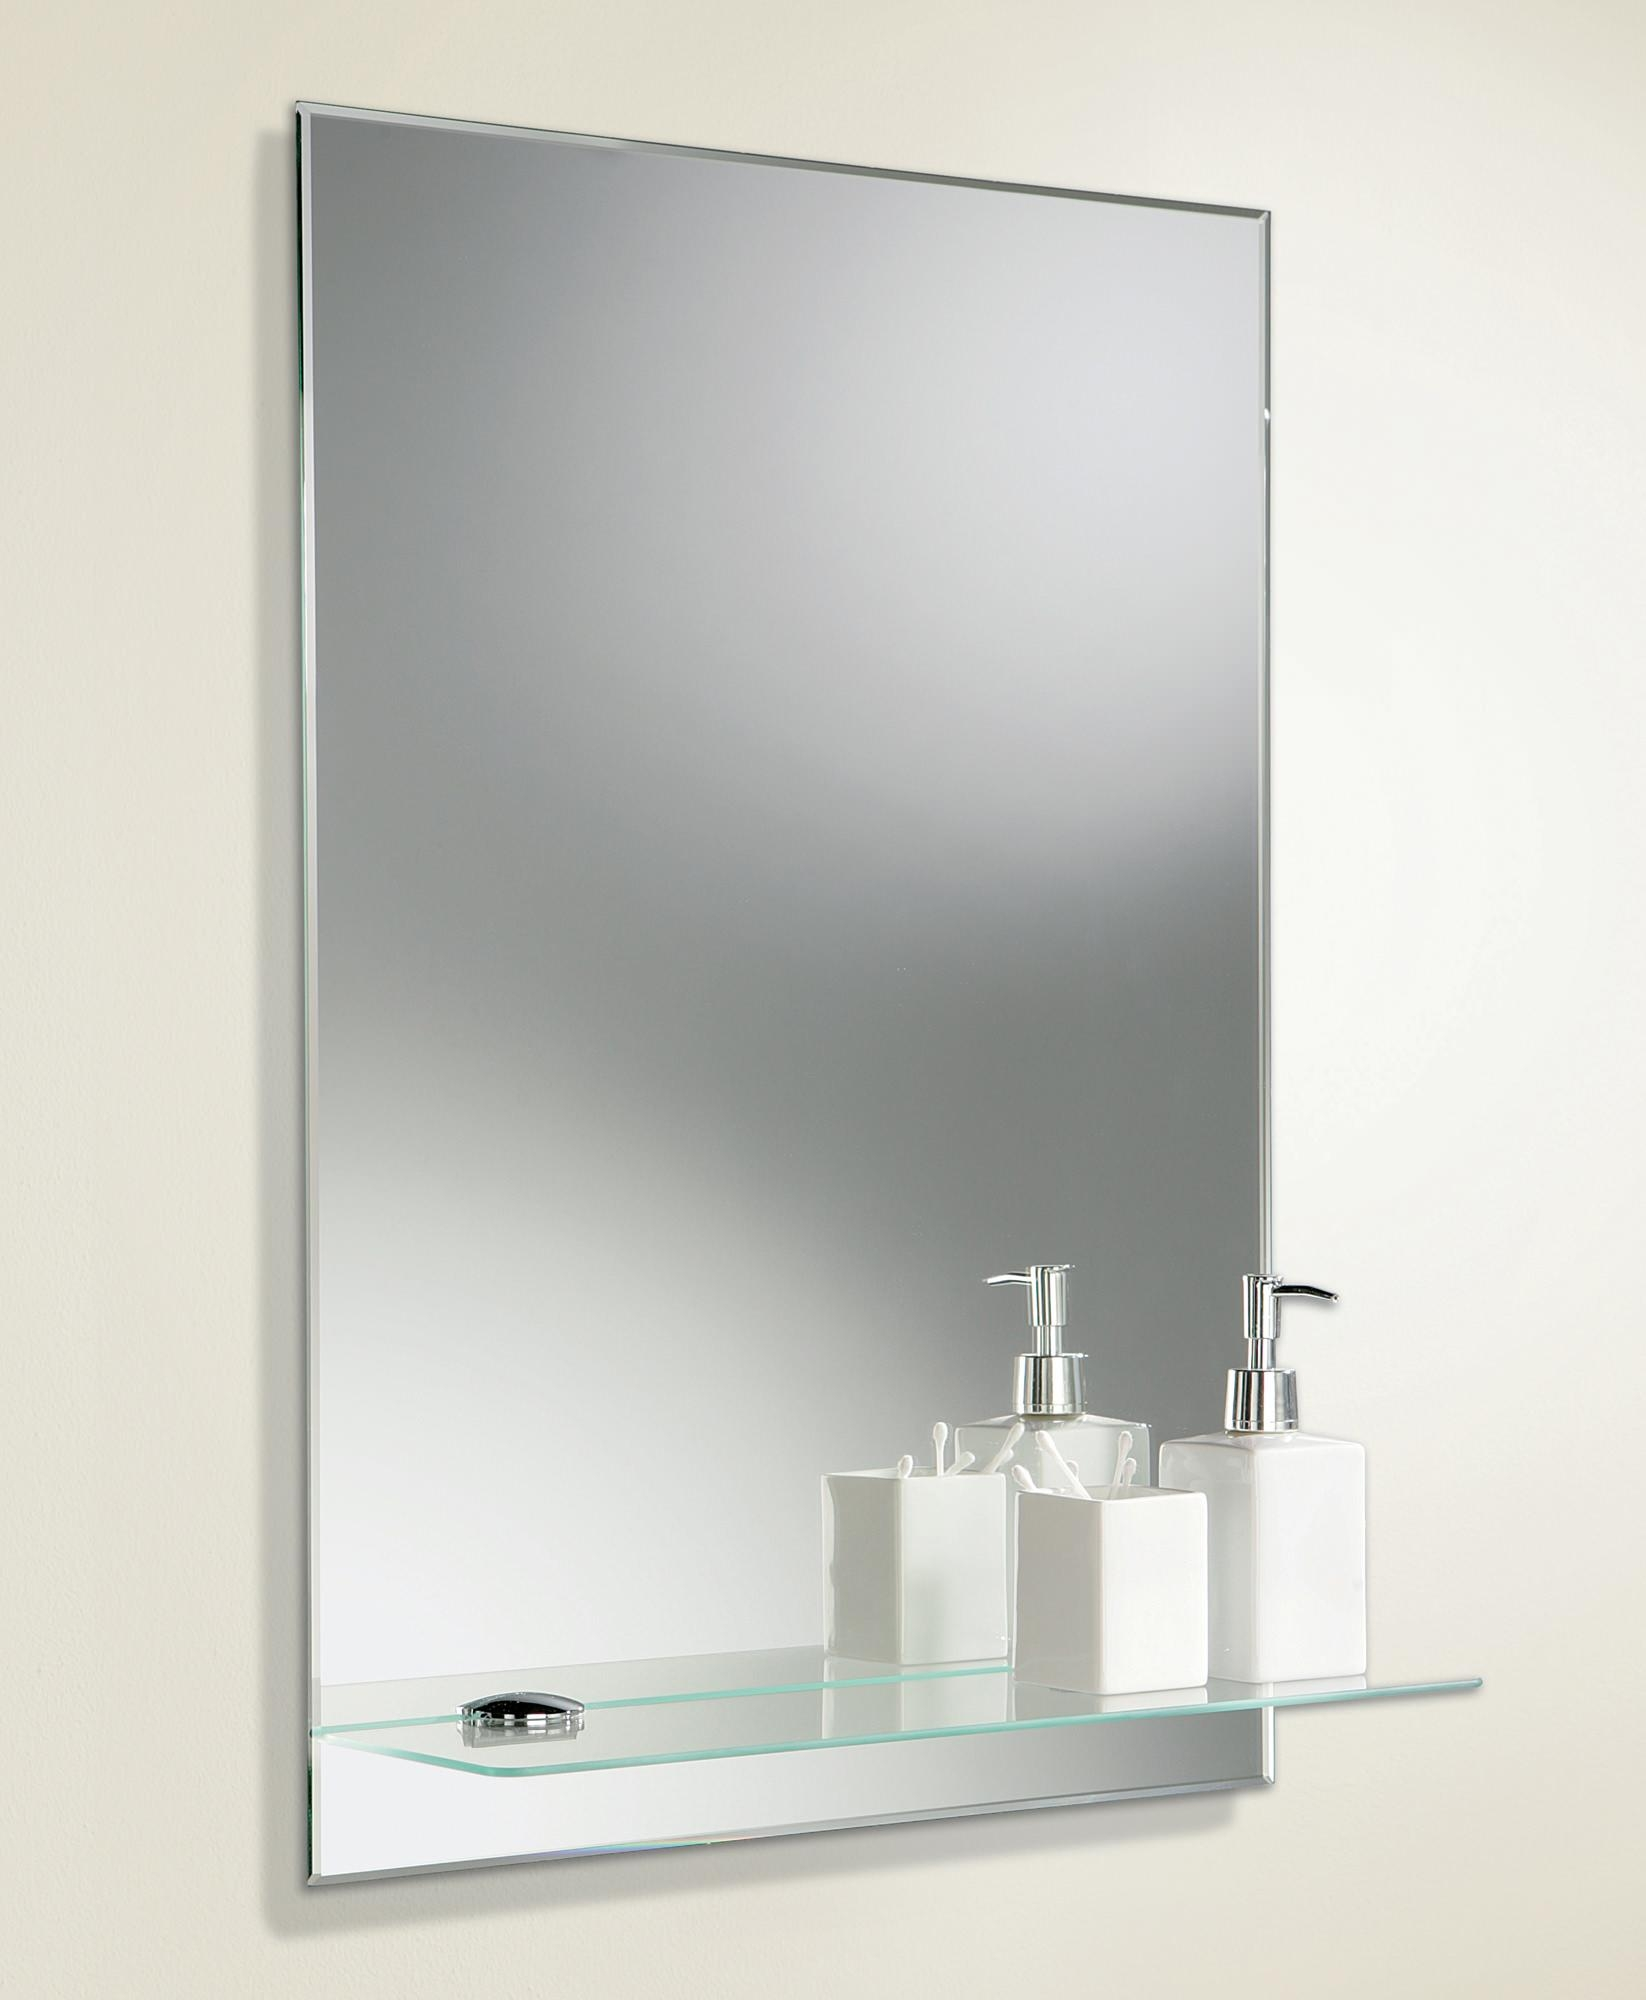 Bathrooms Design : Large Bathroom Mirror White Bathroom Mirror Regarding Free Standing Bathroom Mirrors (View 5 of 20)